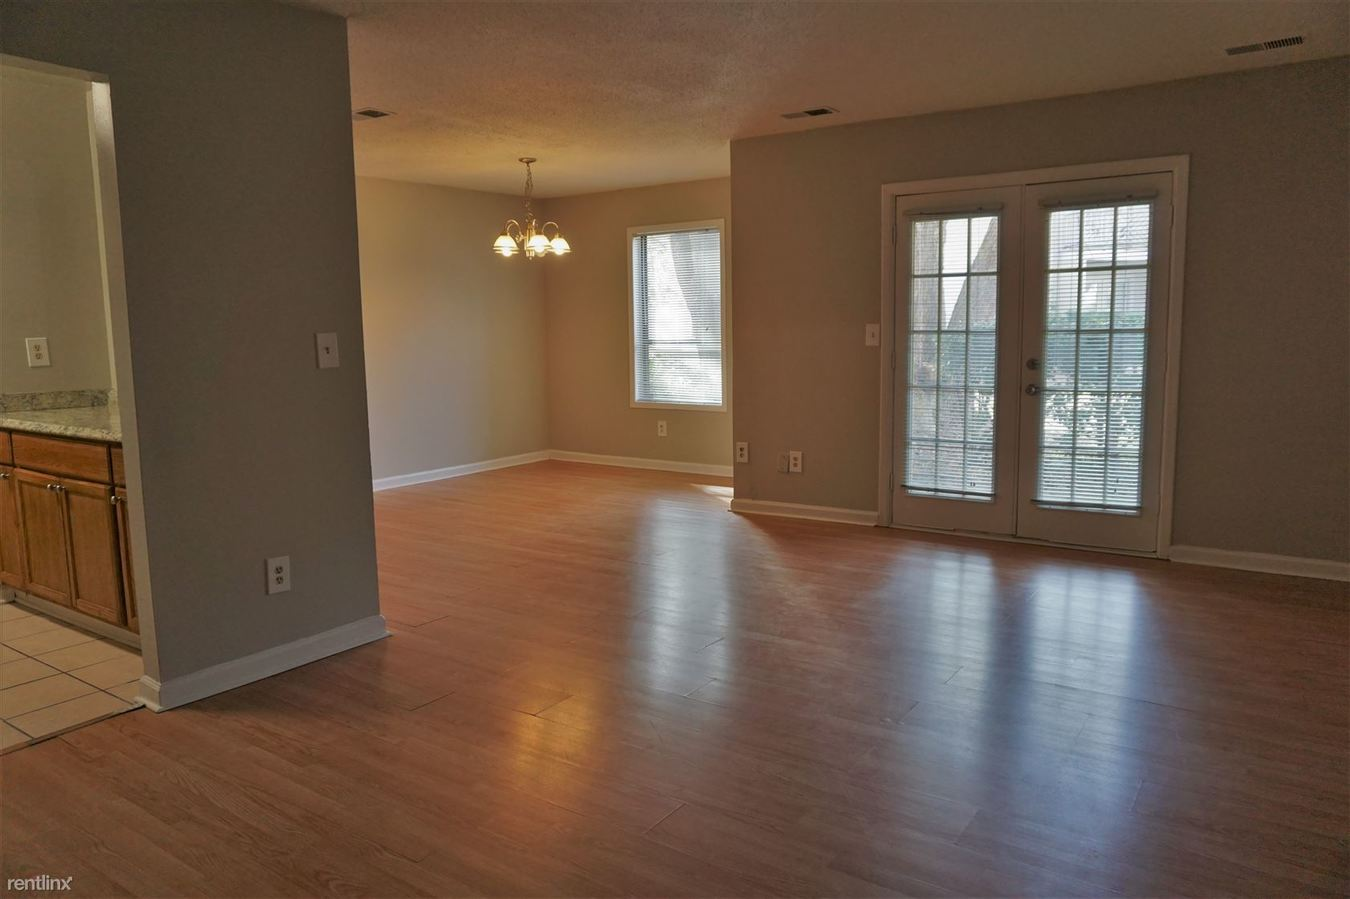 2 Bedrooms 2 Bathrooms Apartment for rent at Northlake Condos in Tucker, GA